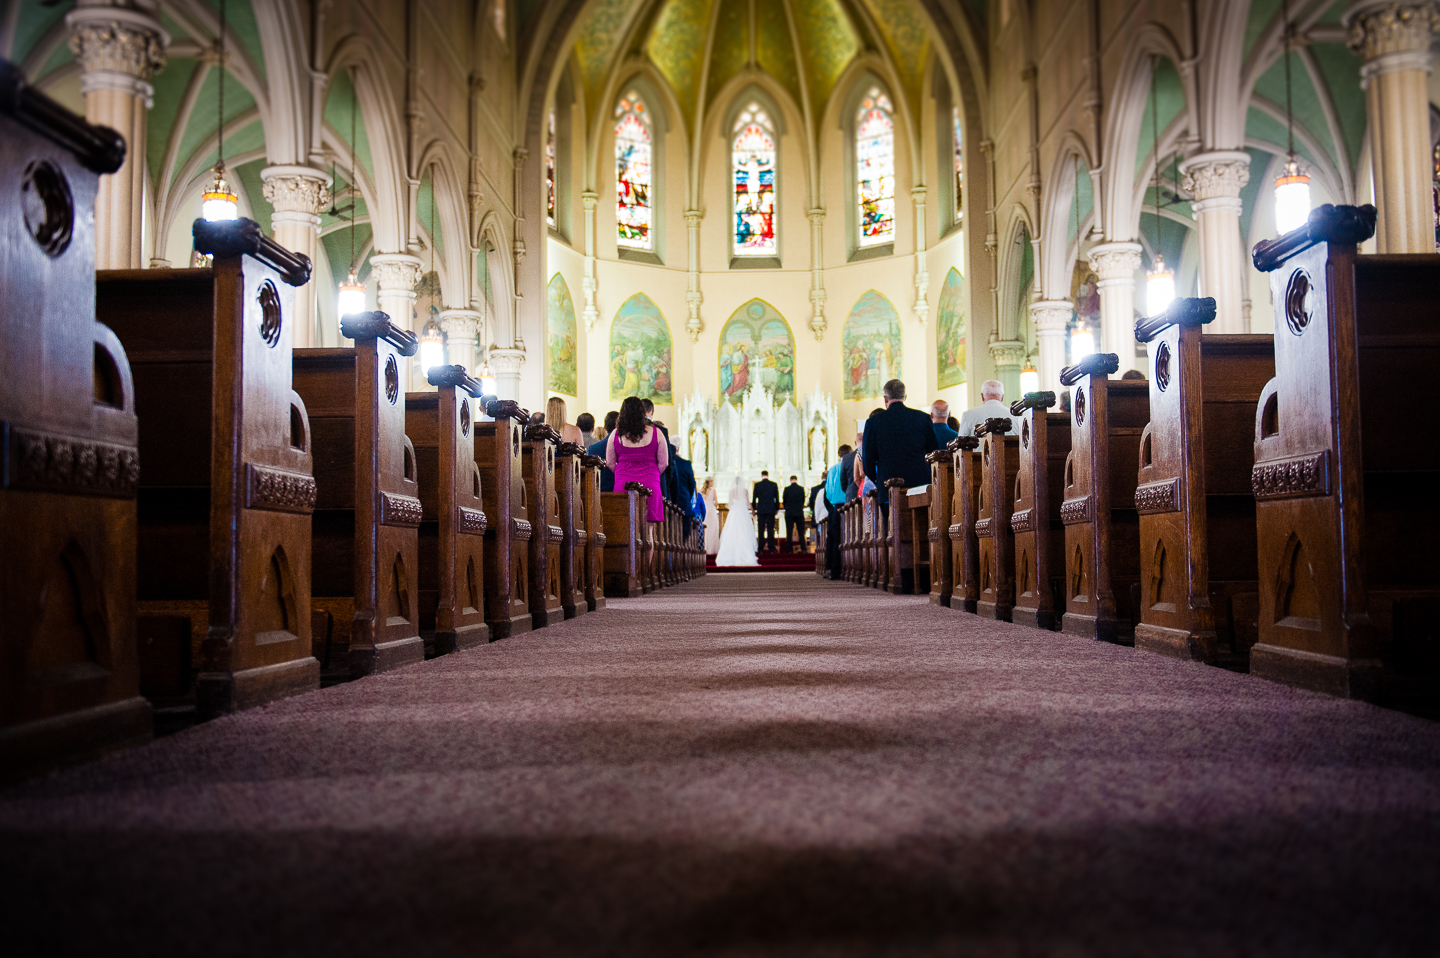 a gorgeous old new england church was the setting for this wedding ceremony